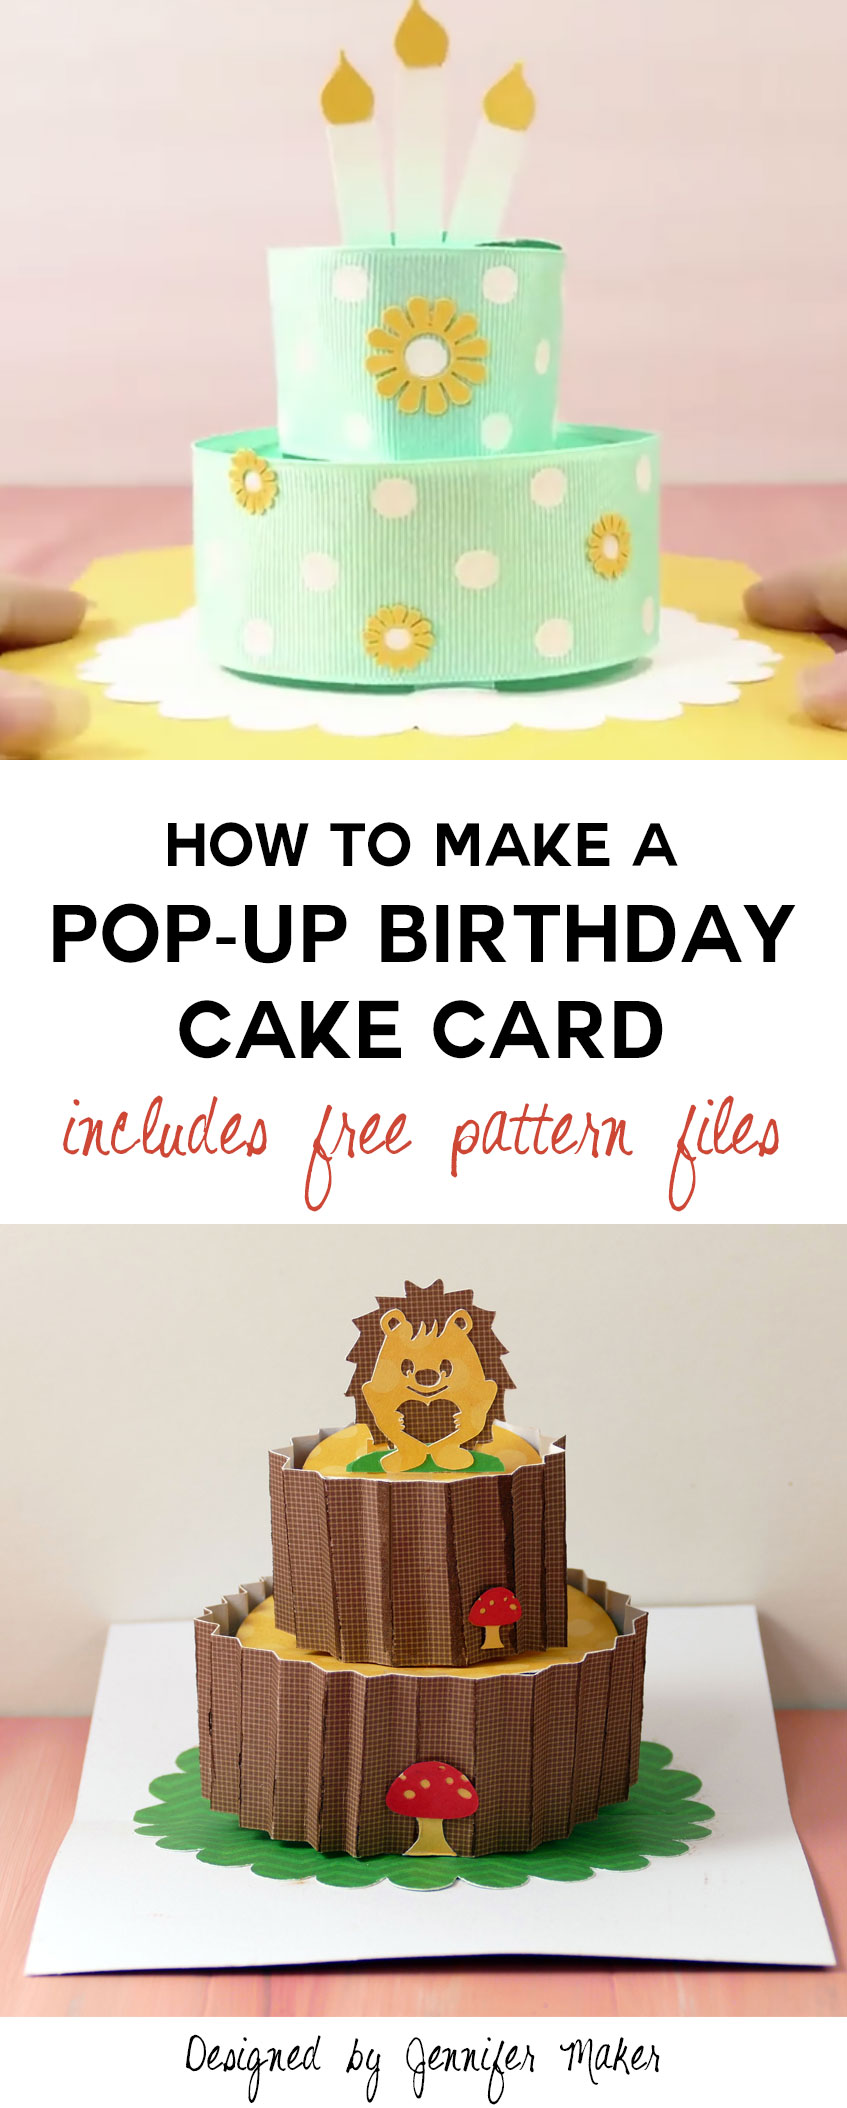 How to Make a PopUp Birthday Cake Card Jennifer Maker – Make a Pop Up Birthday Card